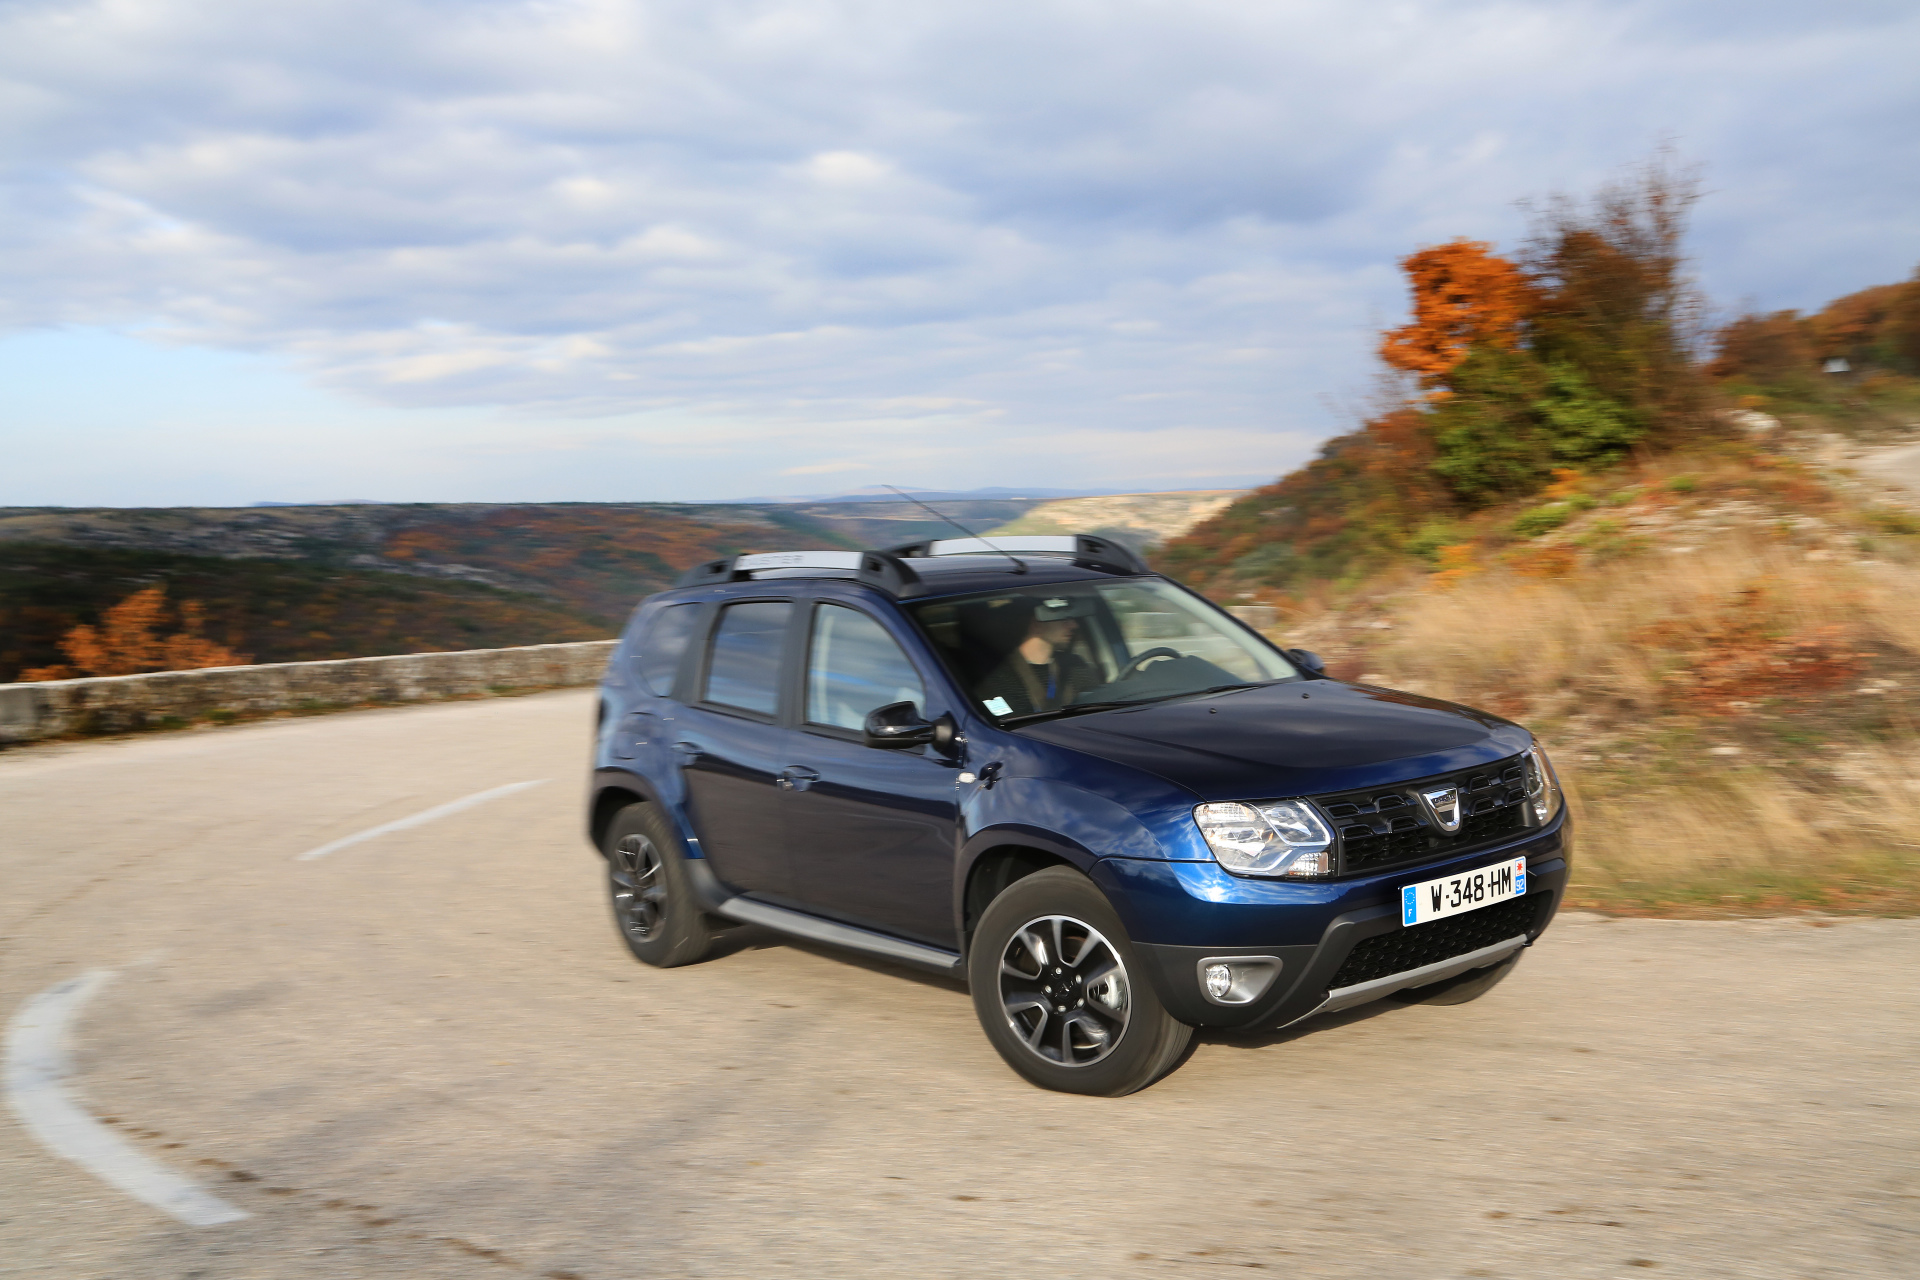 essai dacia duster dci 110 edc notre avis sur le duster automatique photo 27 l 39 argus. Black Bedroom Furniture Sets. Home Design Ideas